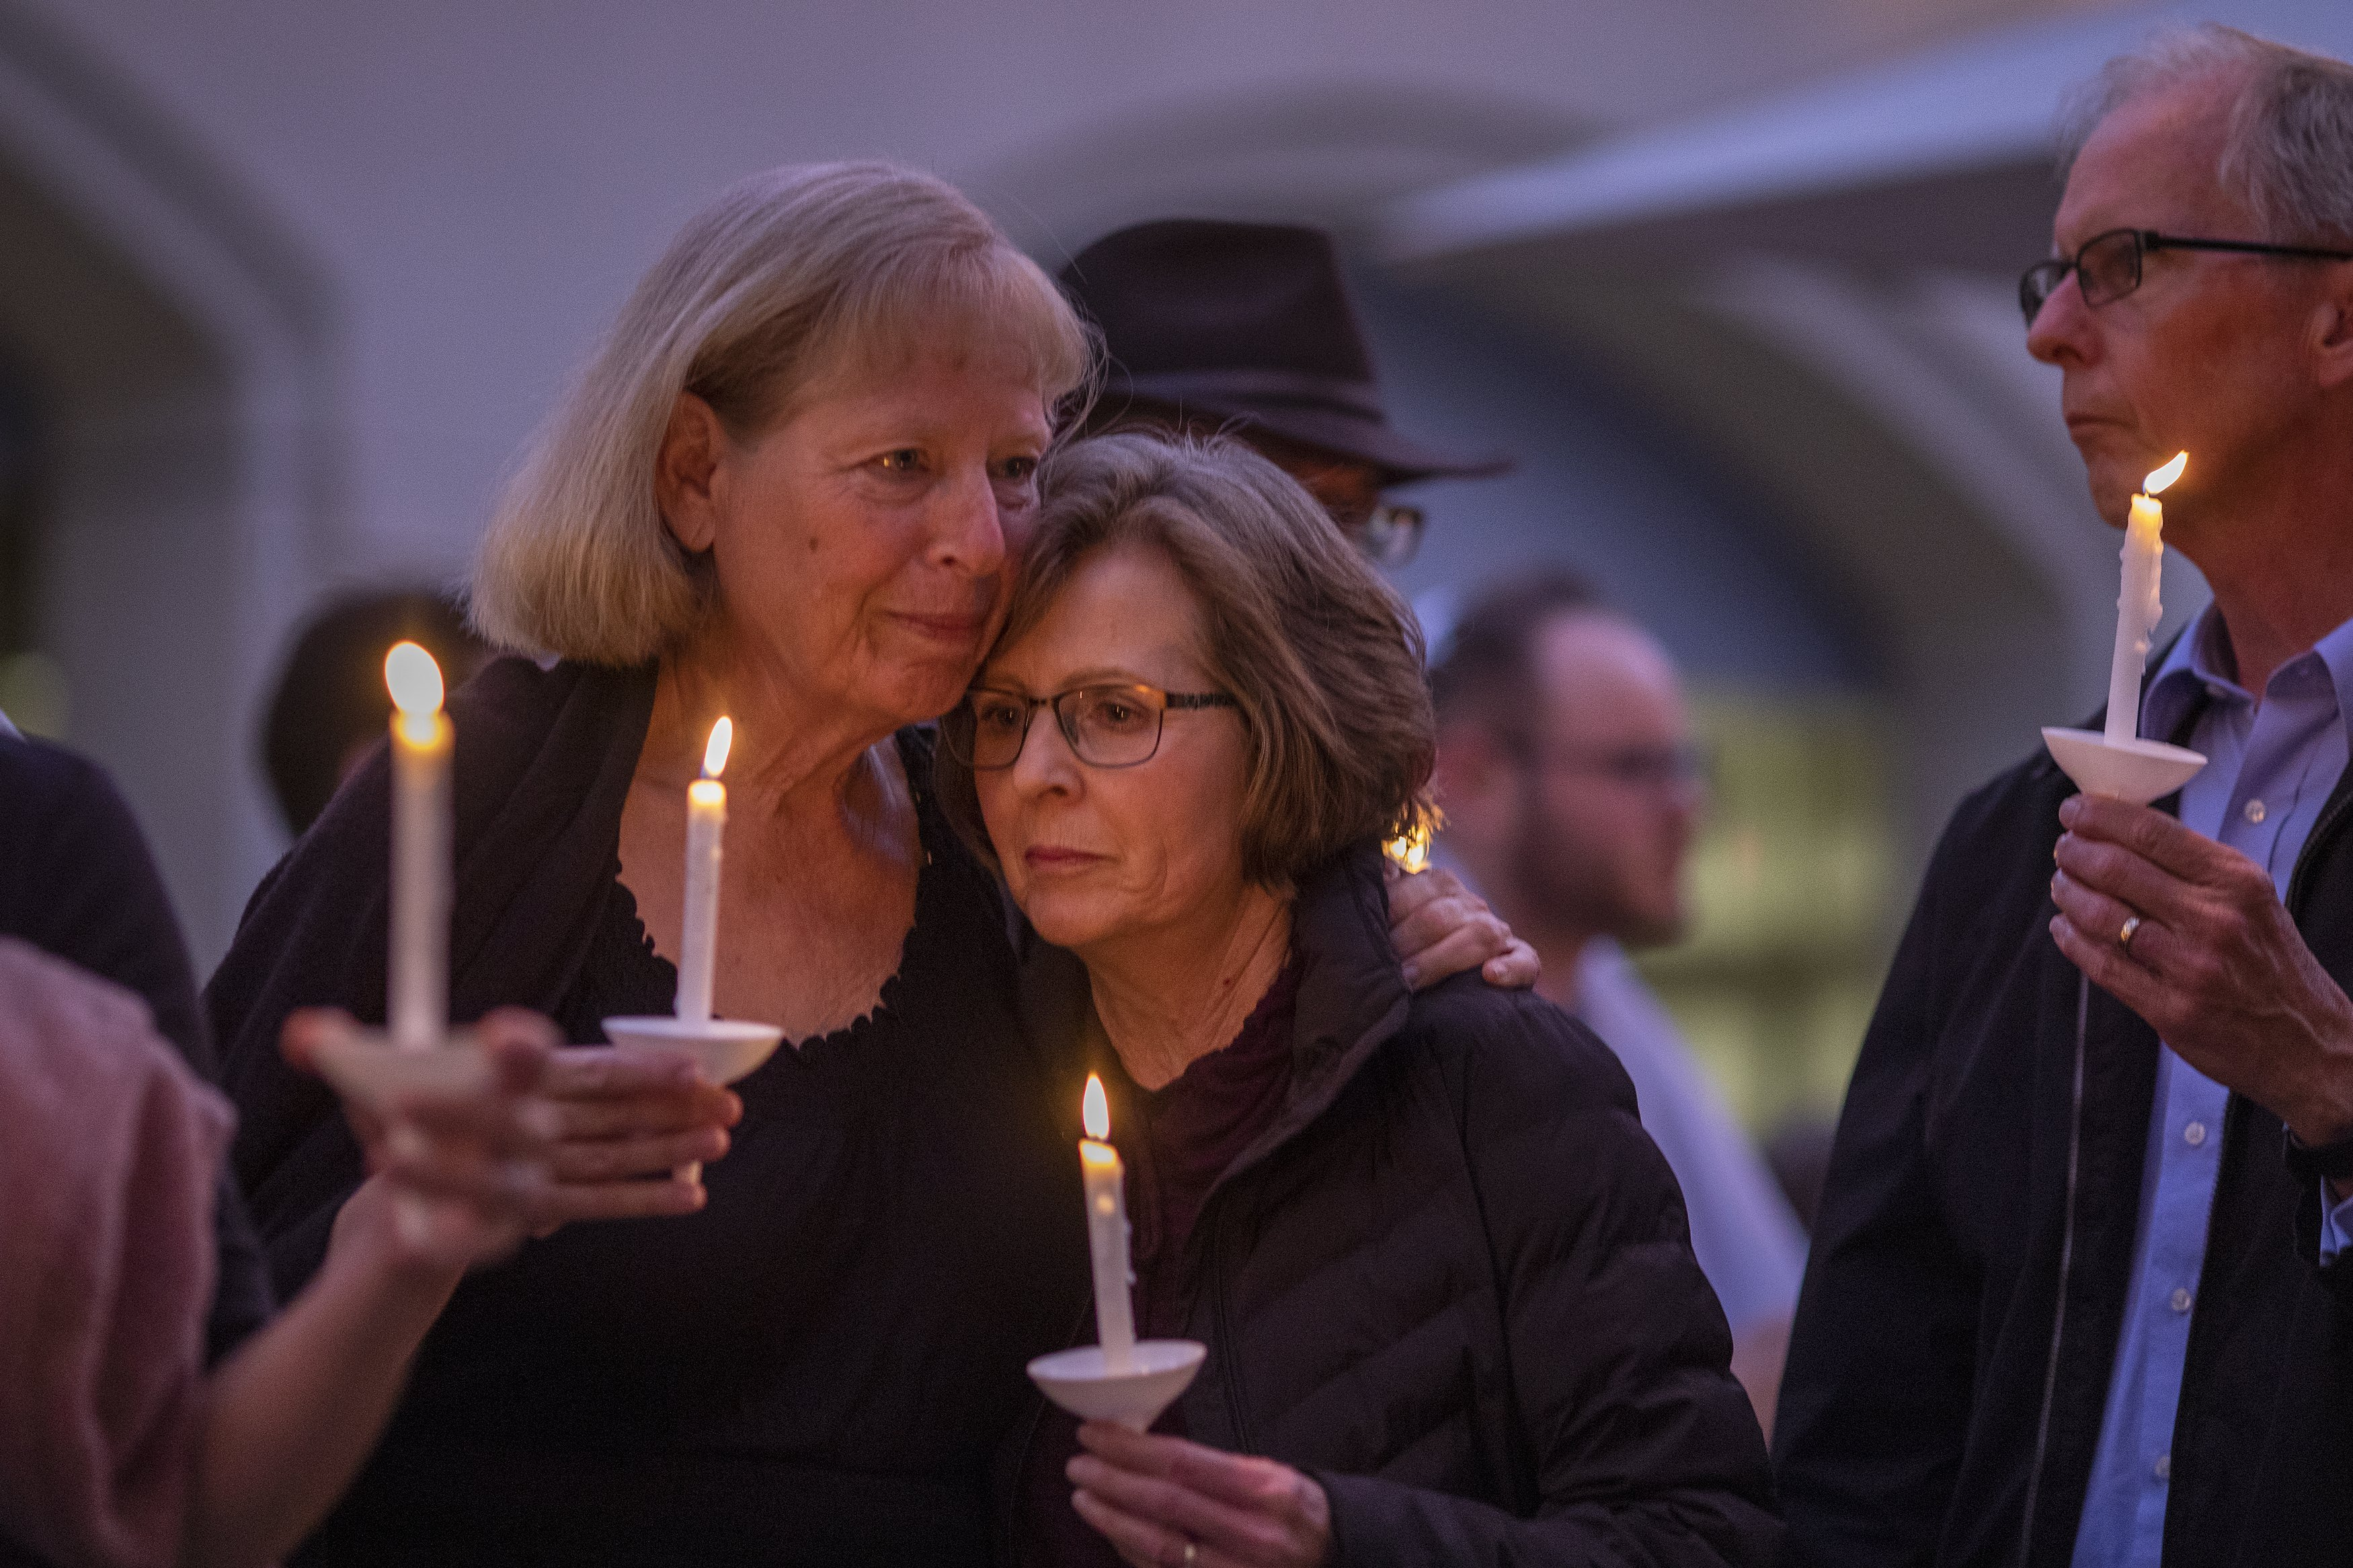 People attending a prayer and candlelight vigil at Rancho Bernardo Community Presbyterian Church in Poway, California | Photo: Getty Images